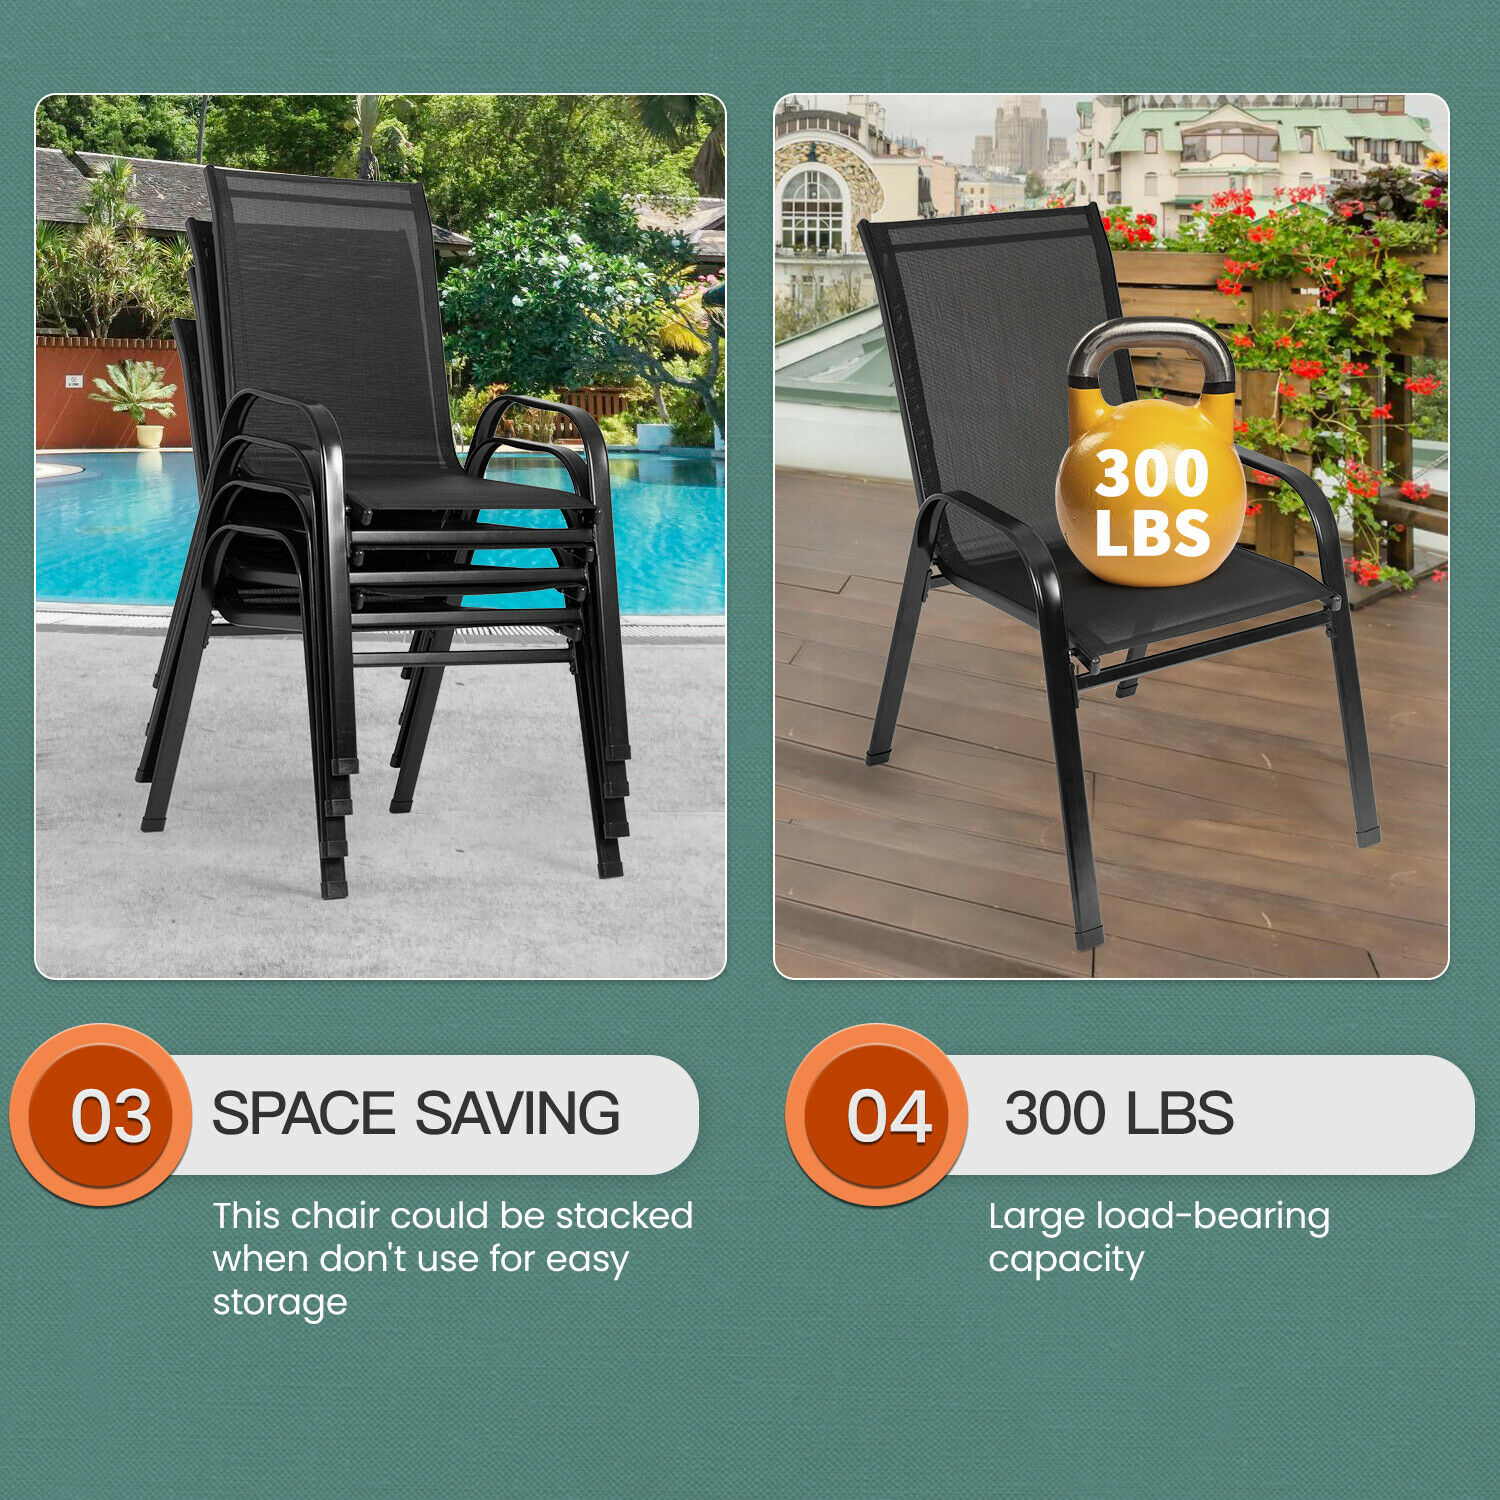 Stackable Patio Chairs Outdoor Chair Patio Chairs Set Of 2 Clearance Home & Garden